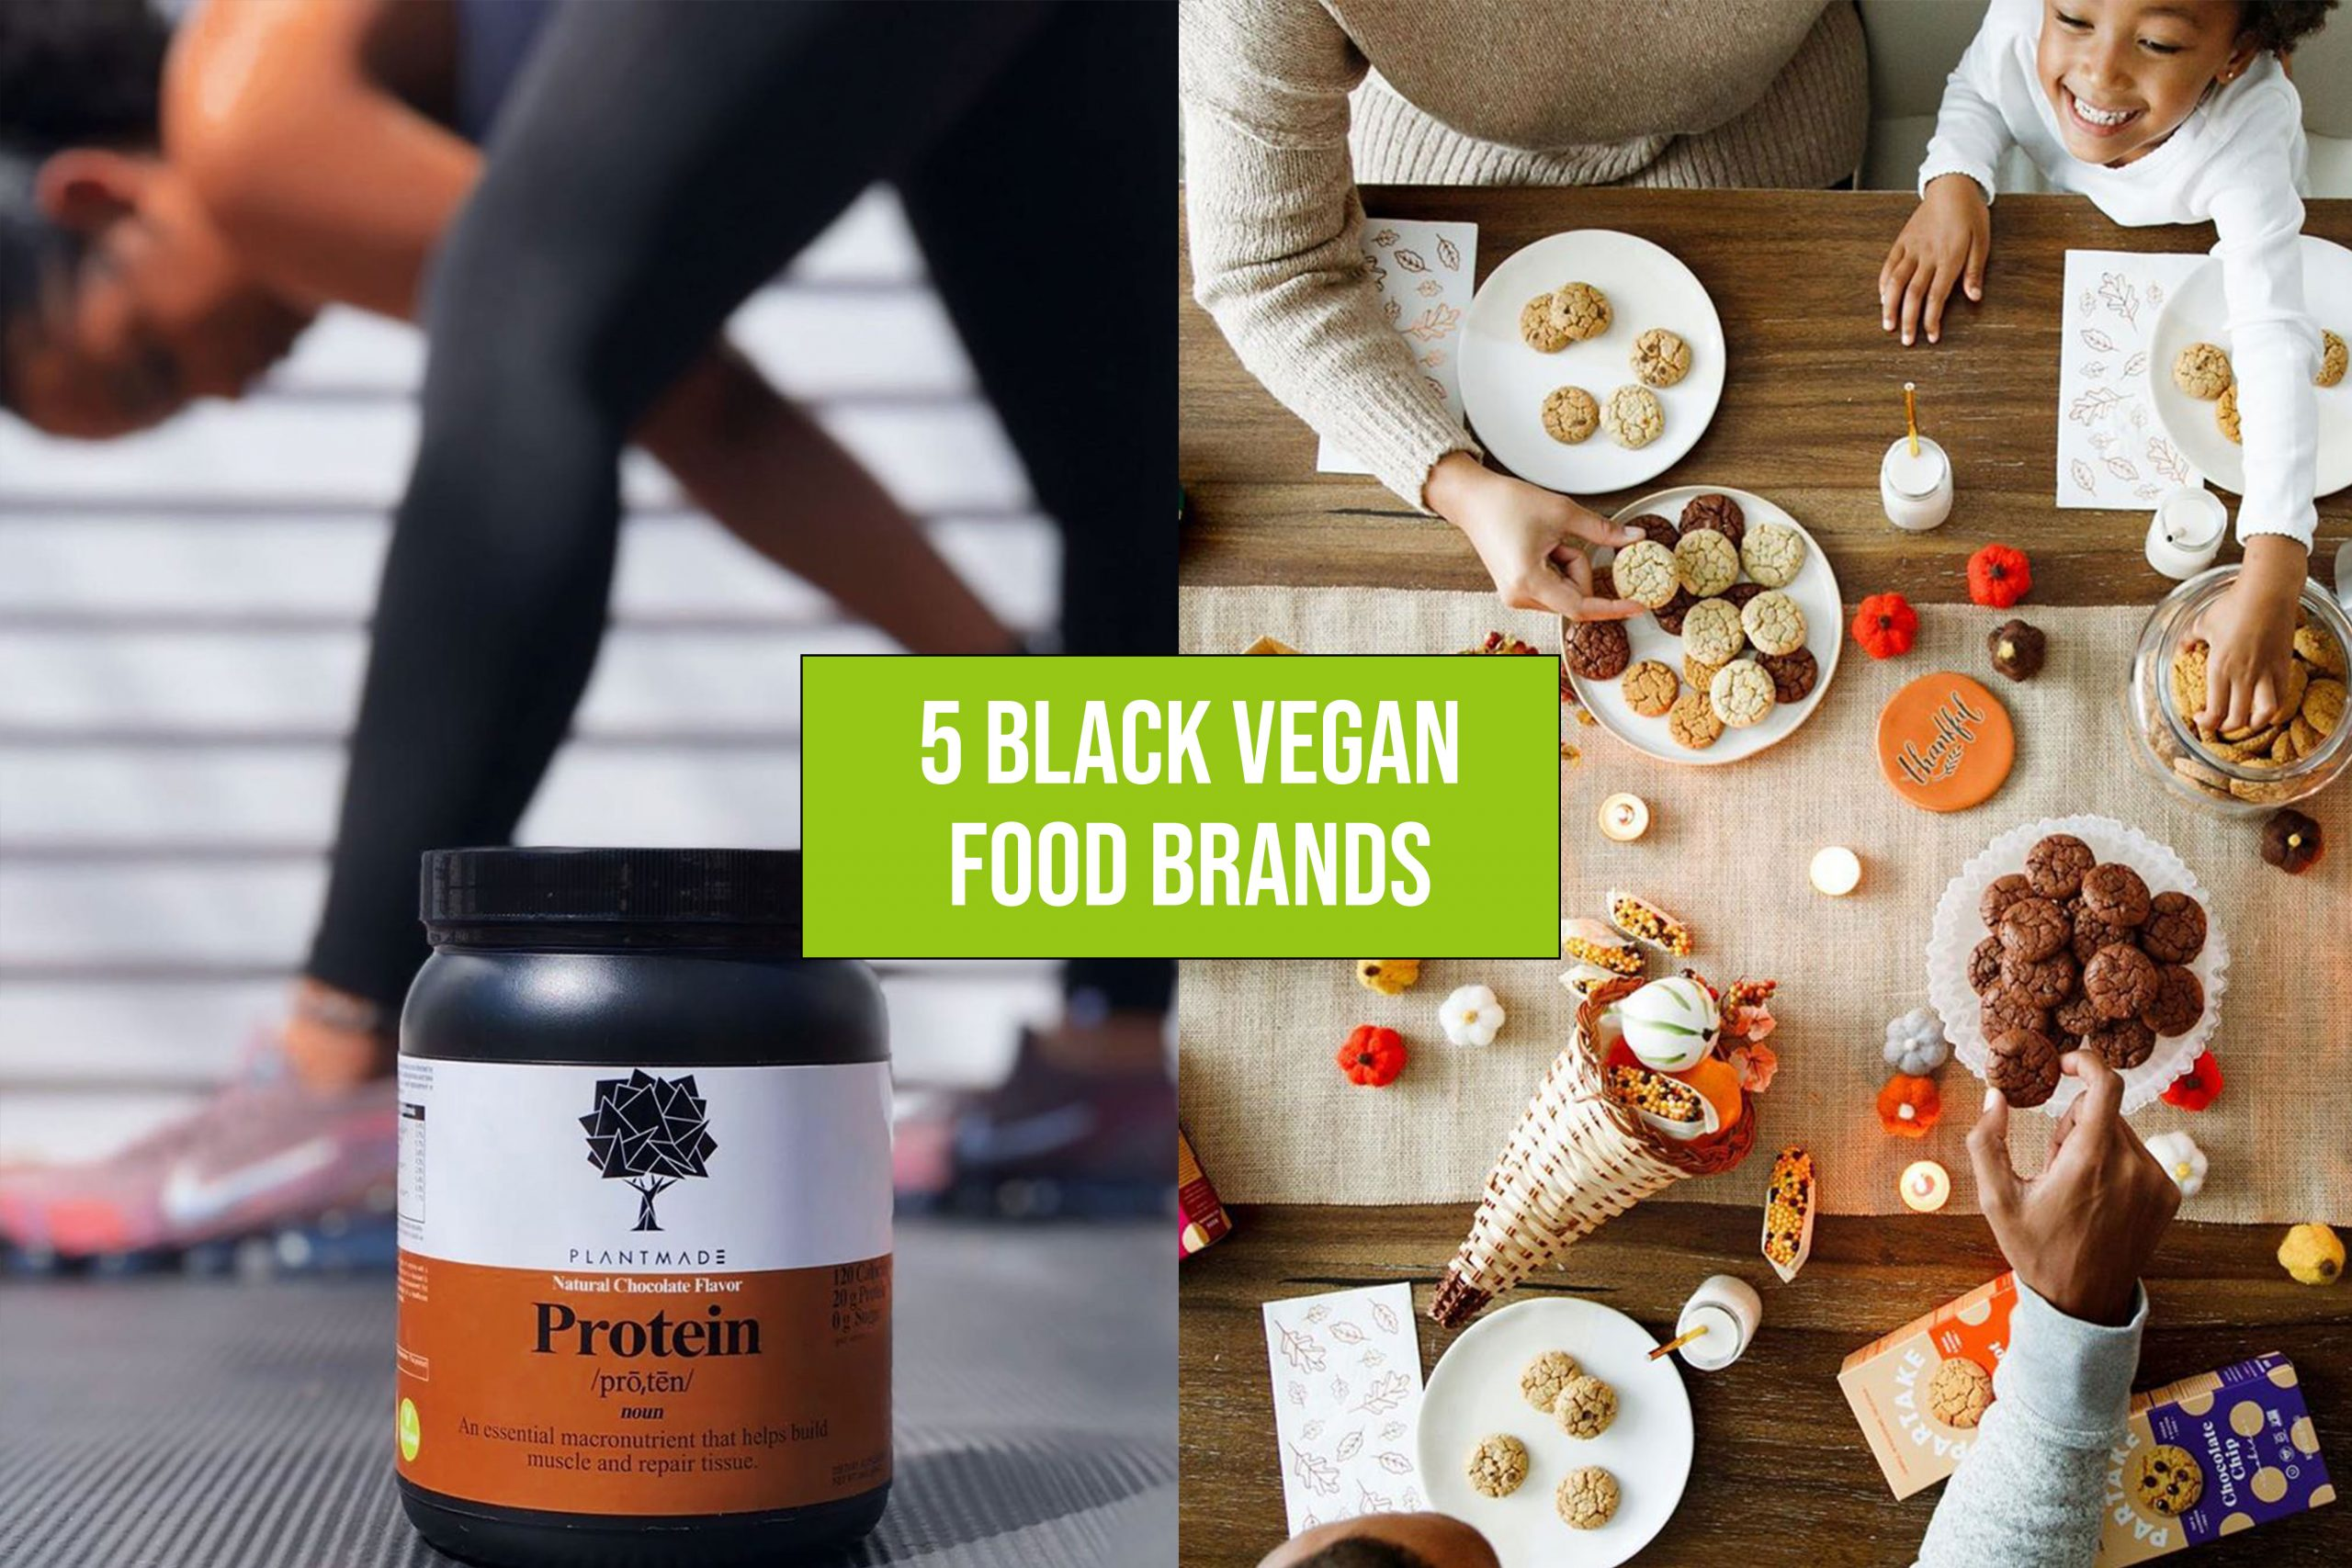 5 Black Vegan Food Brands